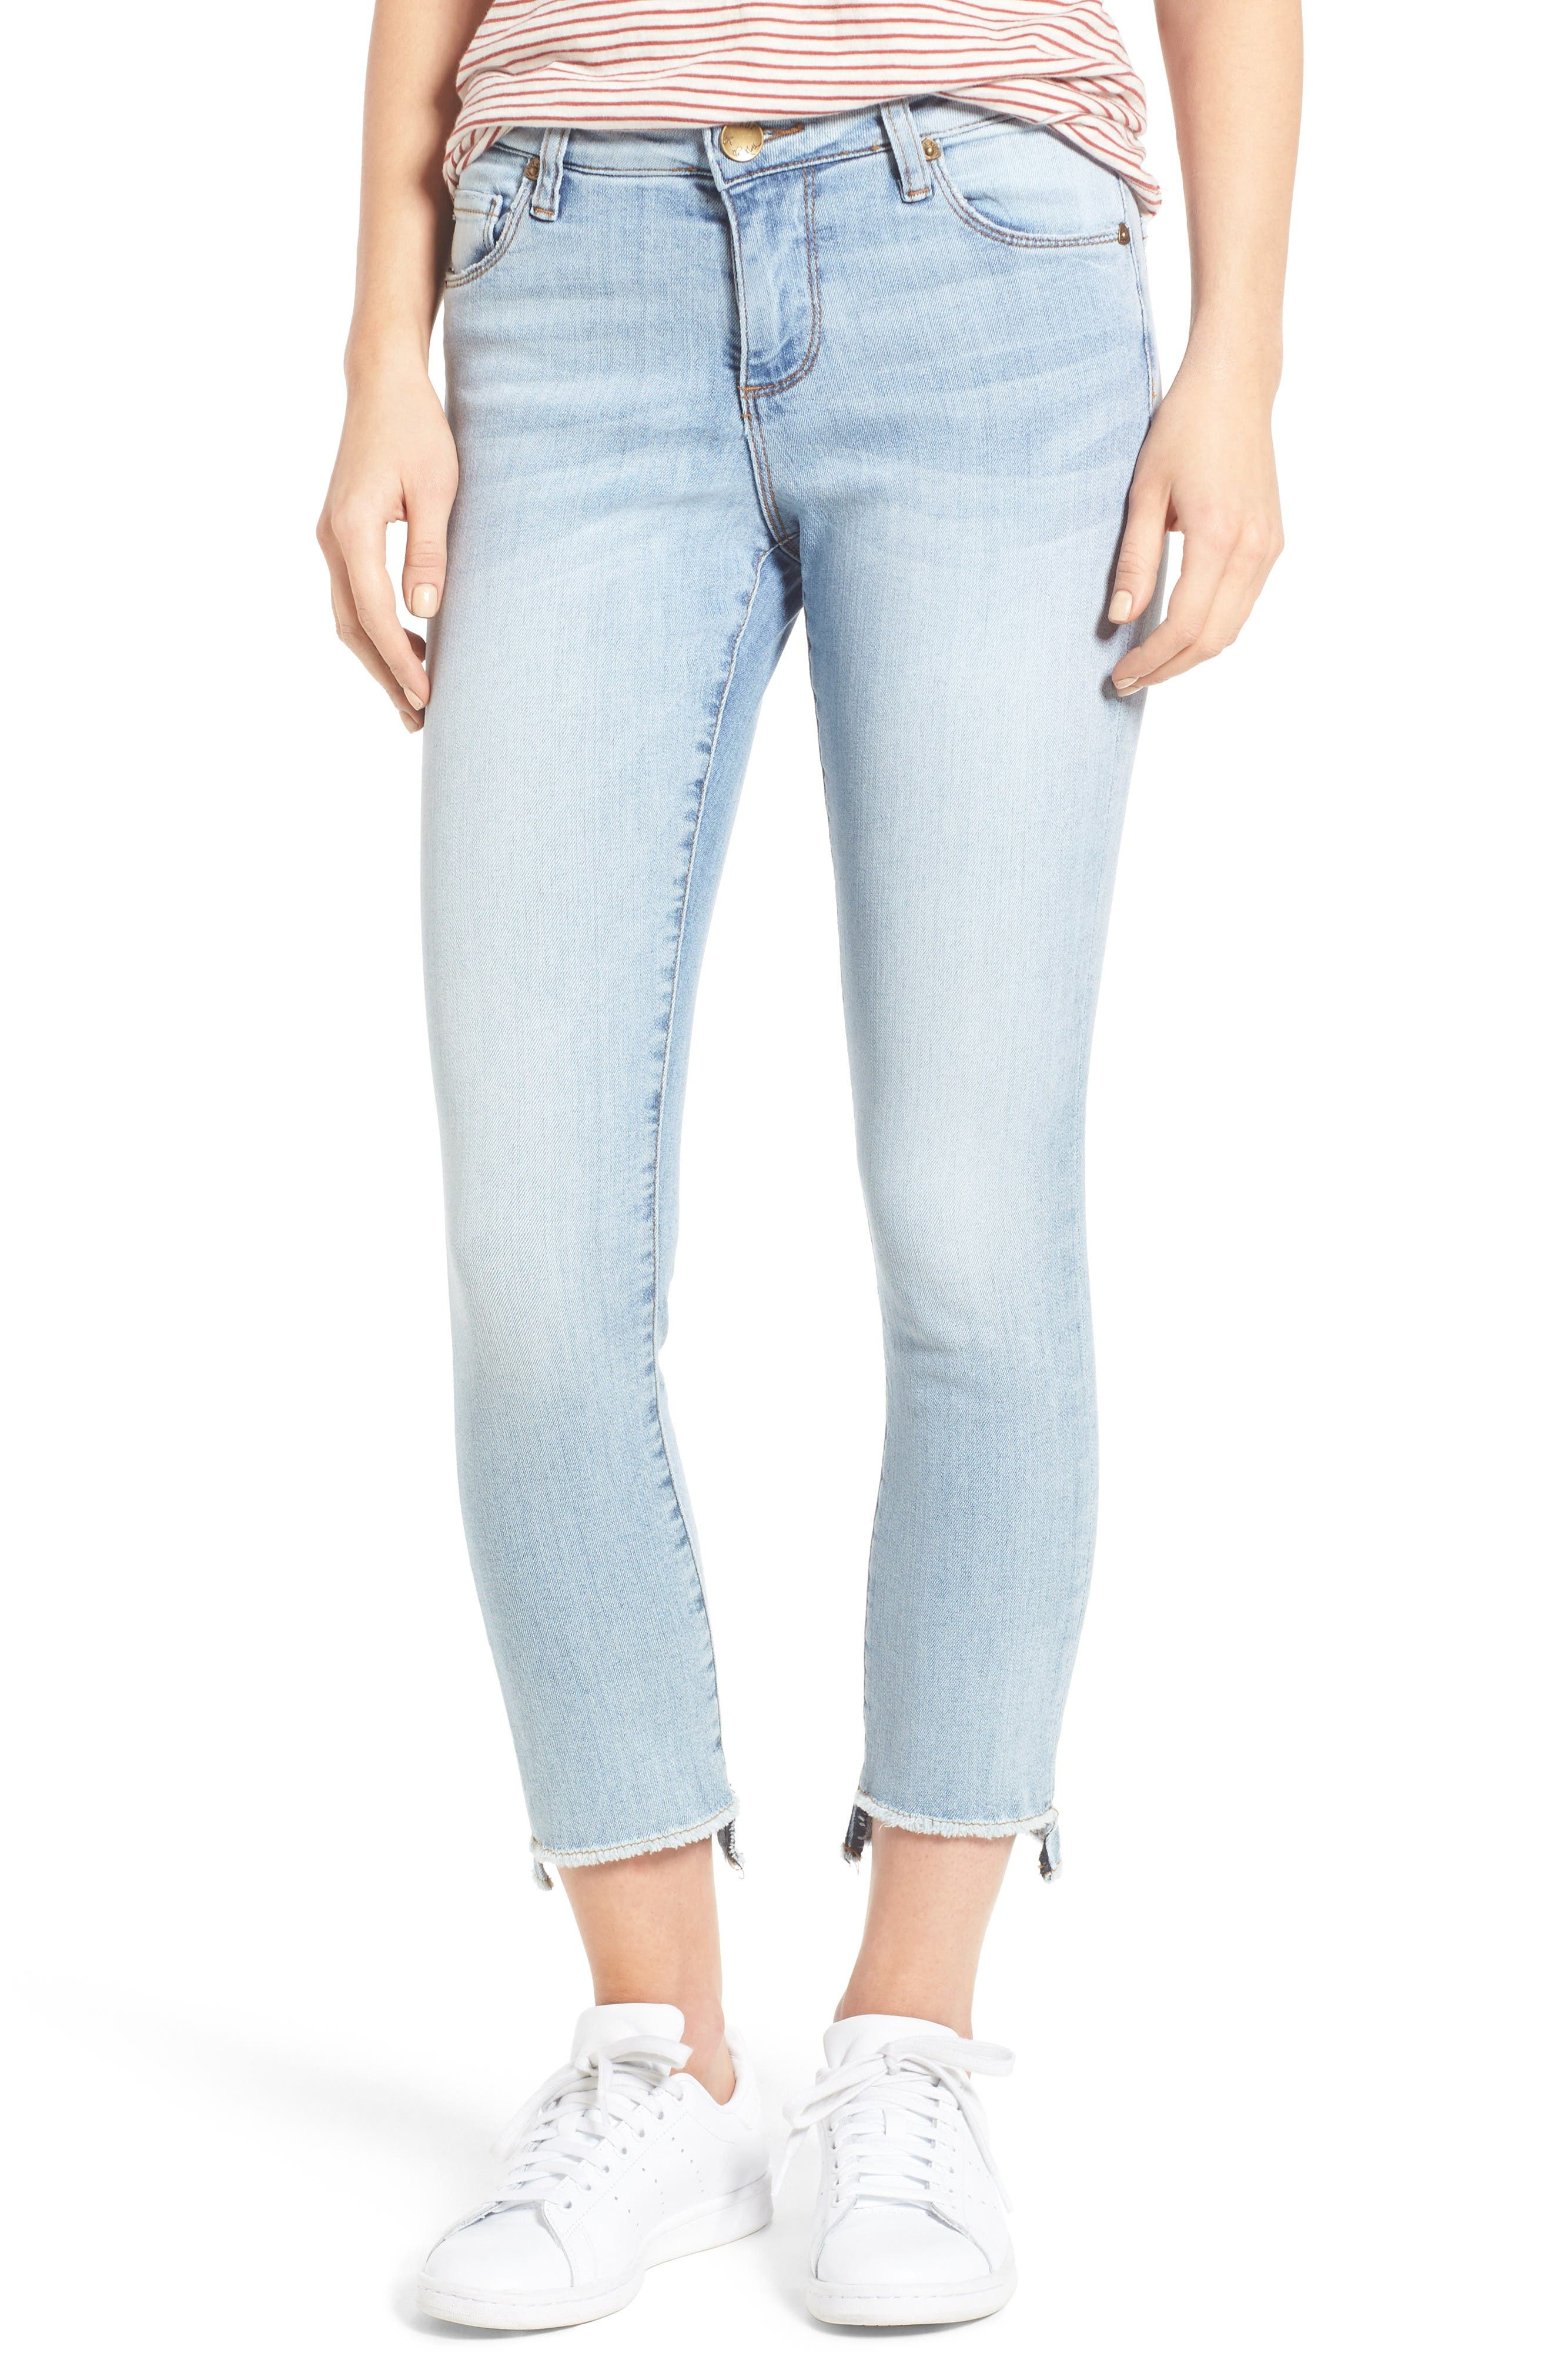 Alternate Image 1 Selected - KUT from the Kloth Reese Uneven Hem Straight Ankle Jeans (Celebratory)